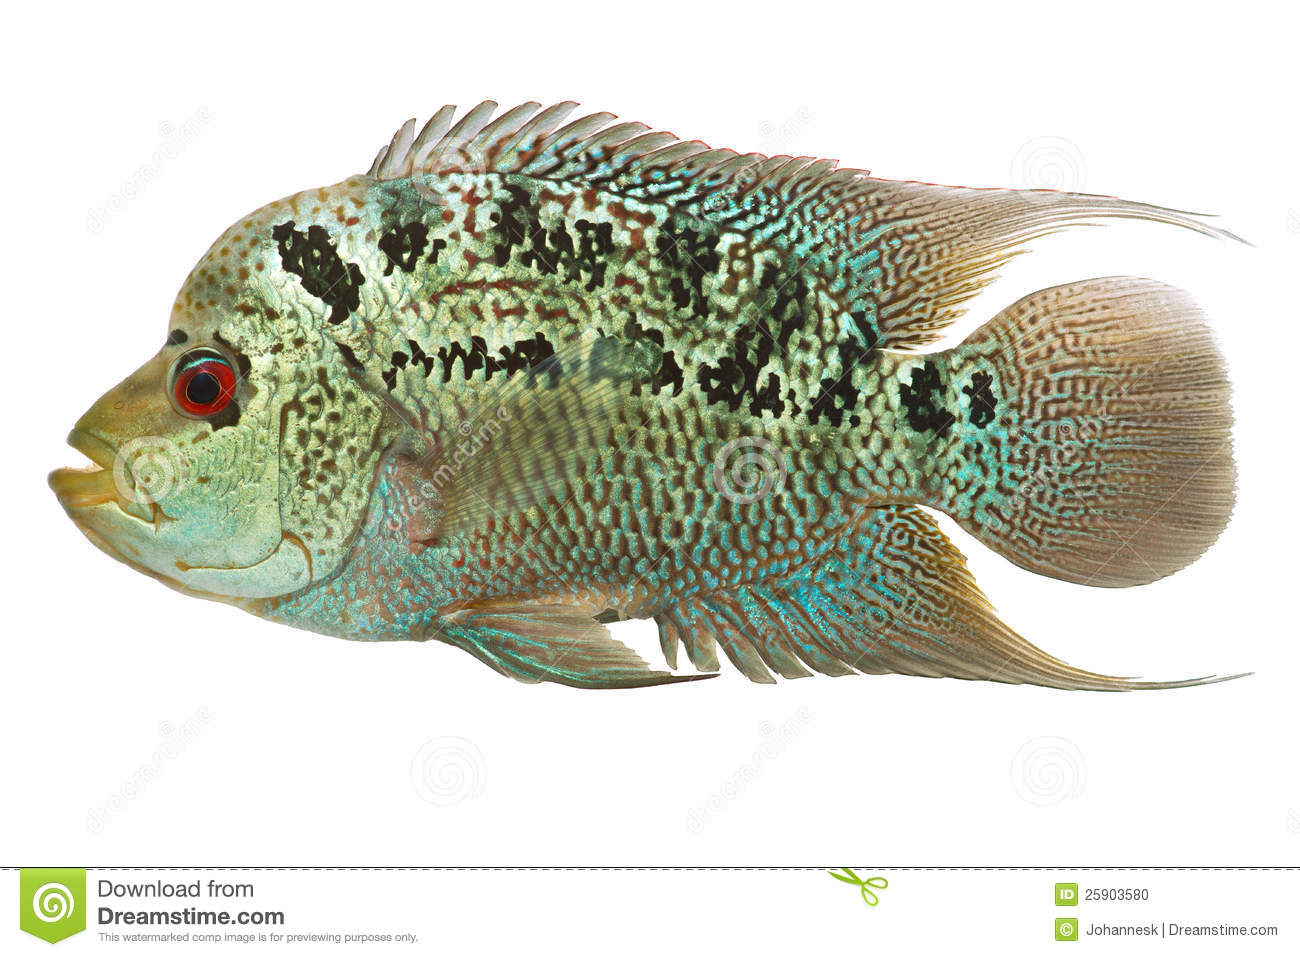 Flowerhorn cichlid fish stock photo image of flowerhorn for Flower horn fish price